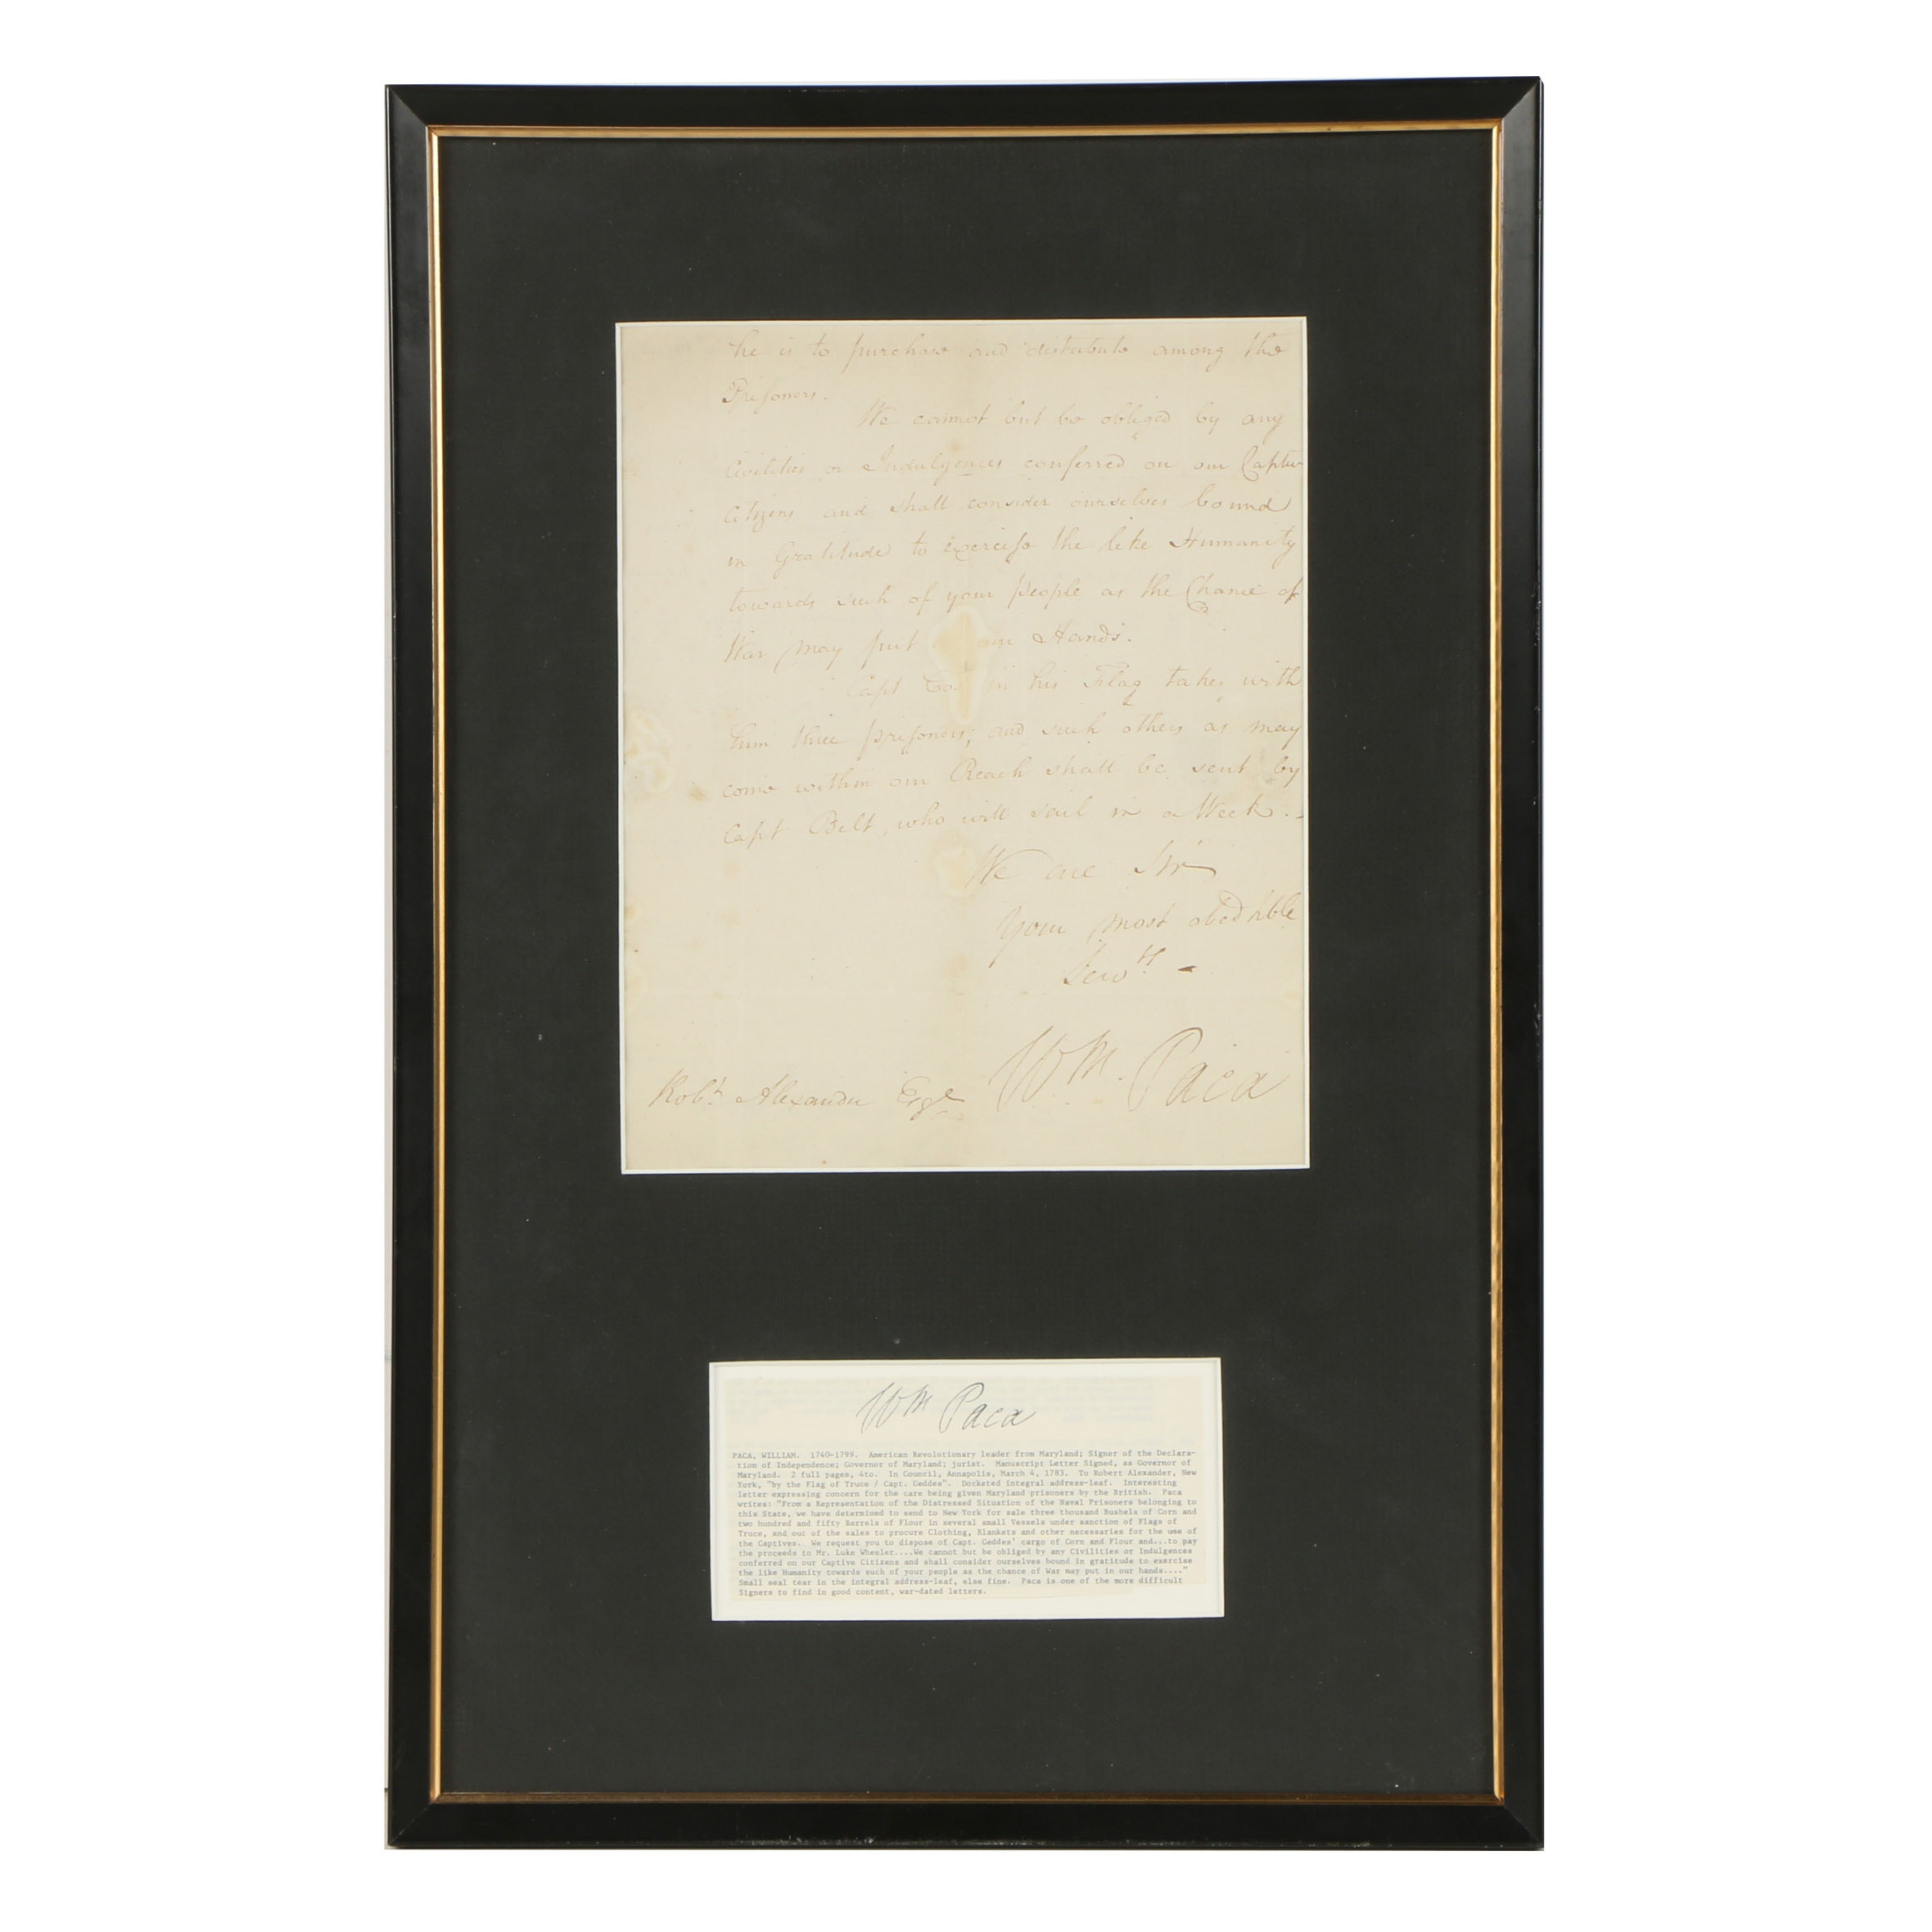 William Paca Manuscript Letter Signed March 4, 1783